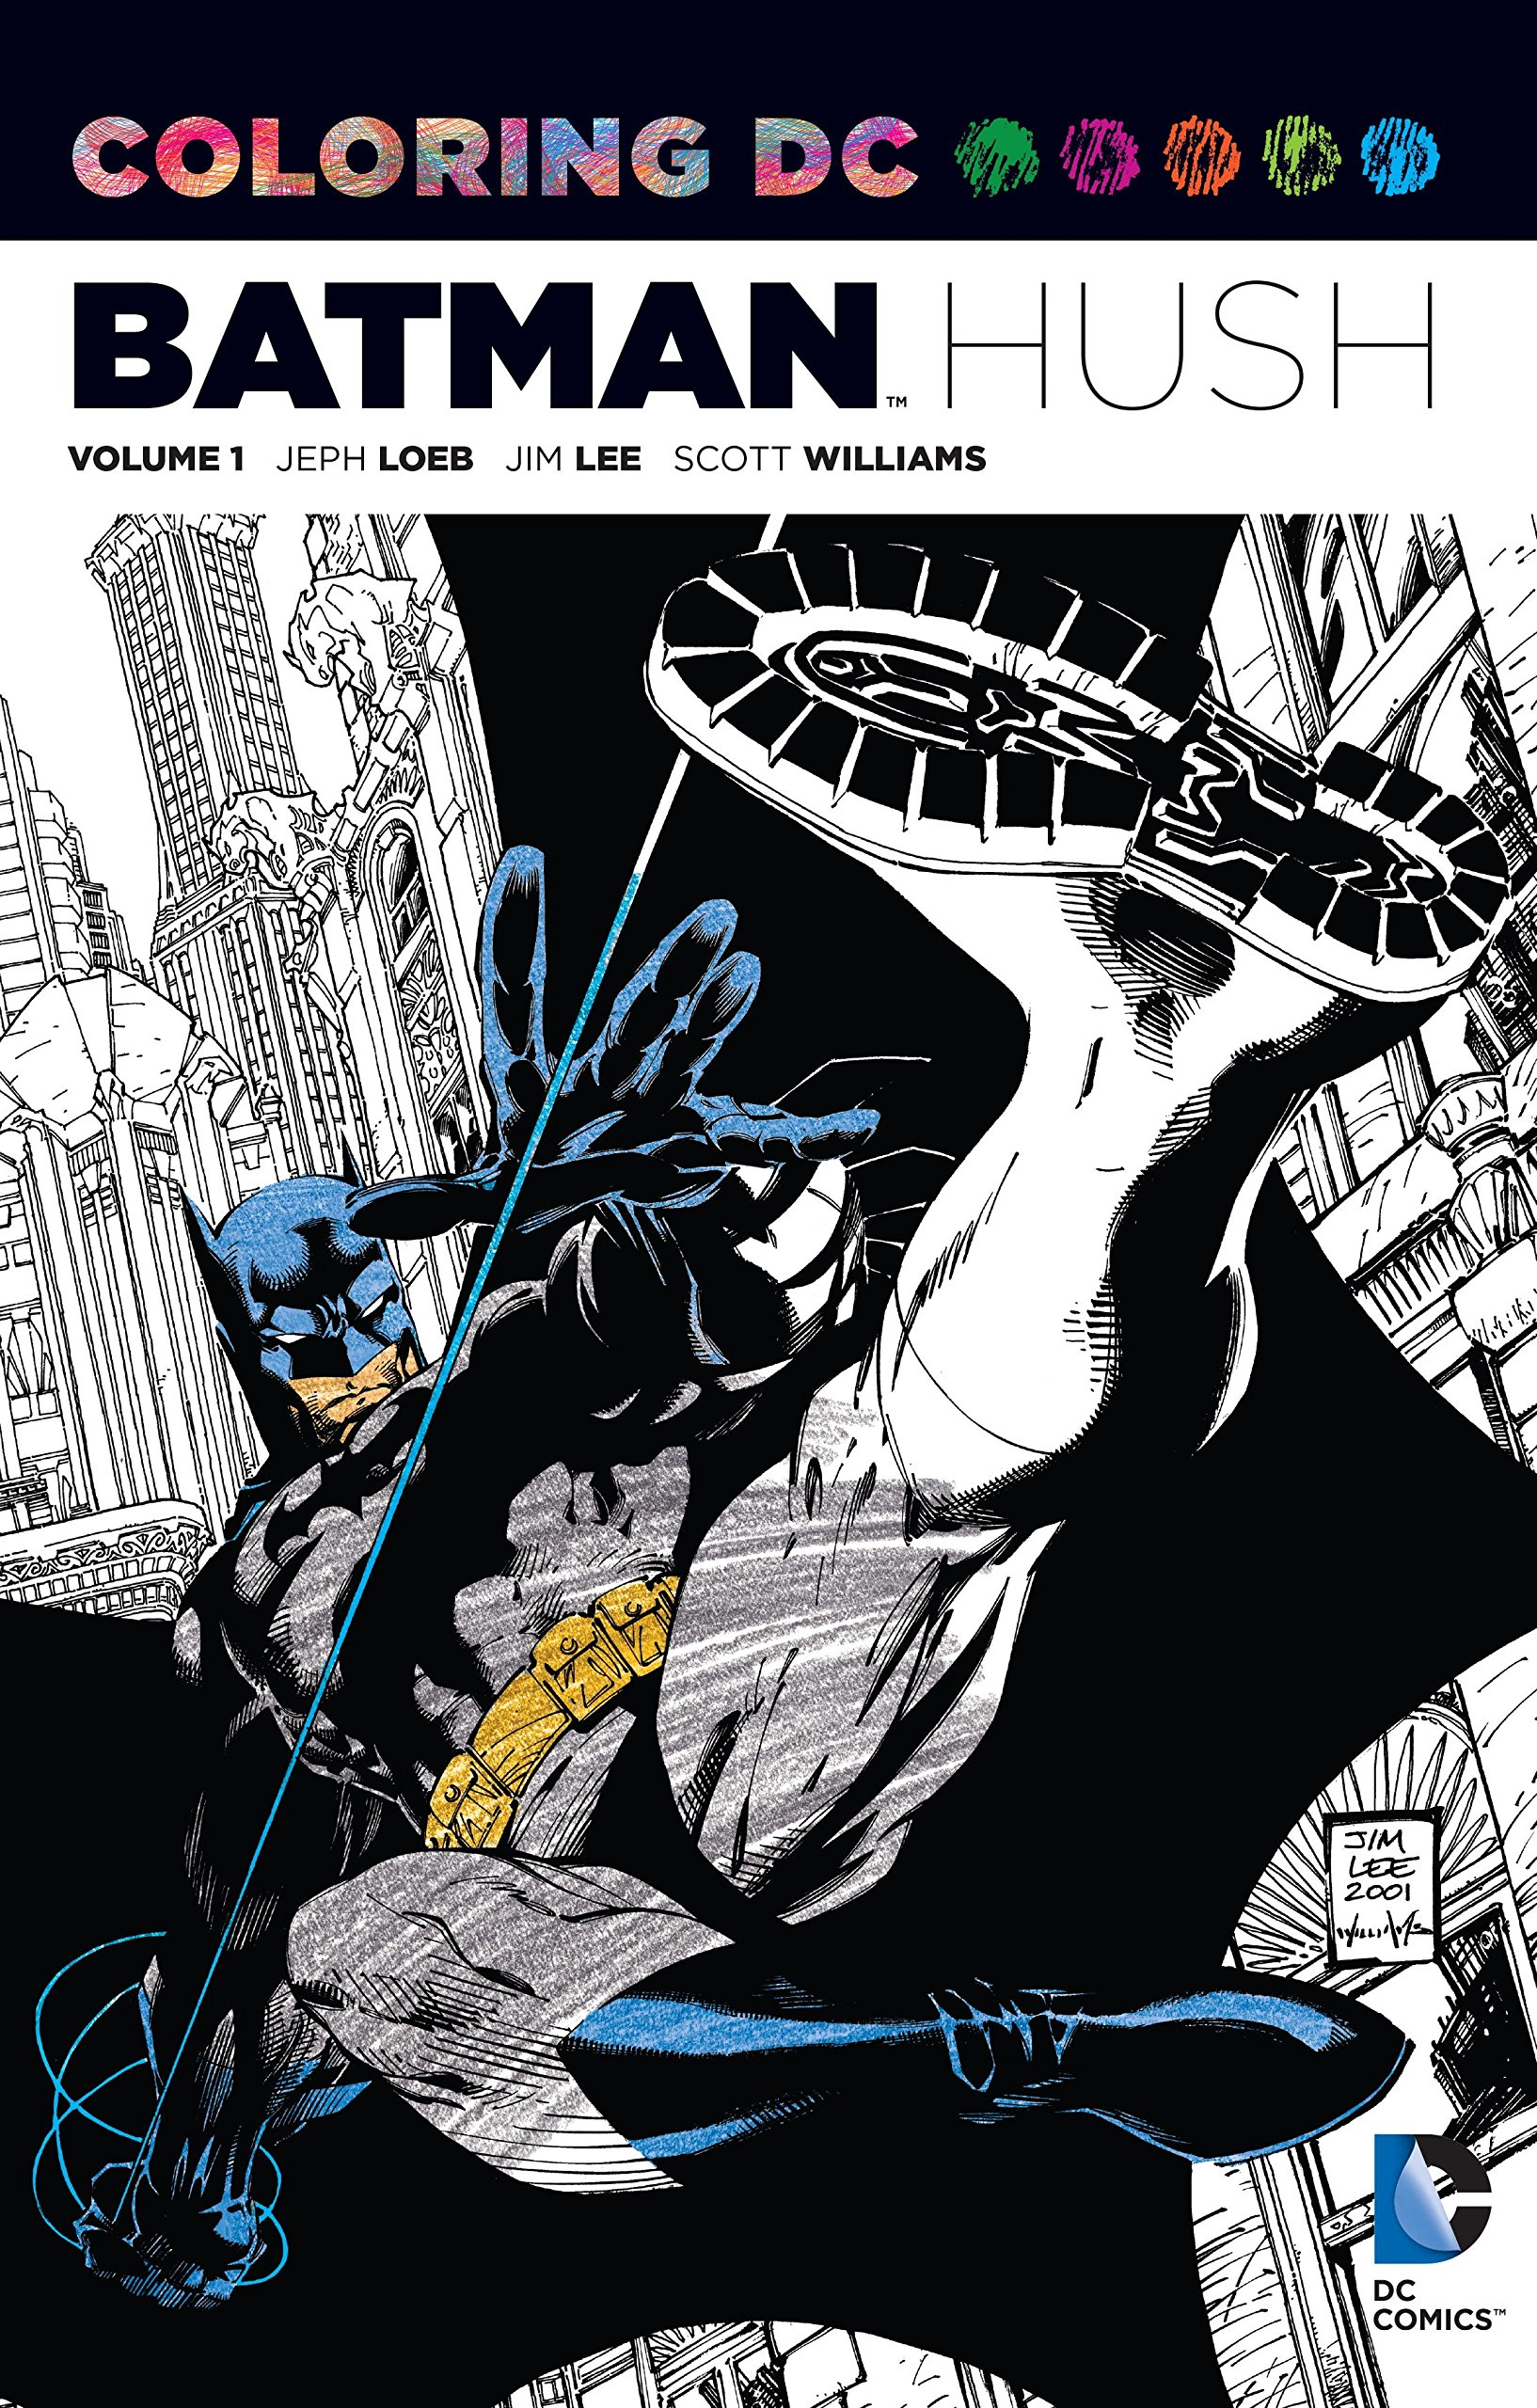 Coloring DC Batman Hush Vol Comics product image